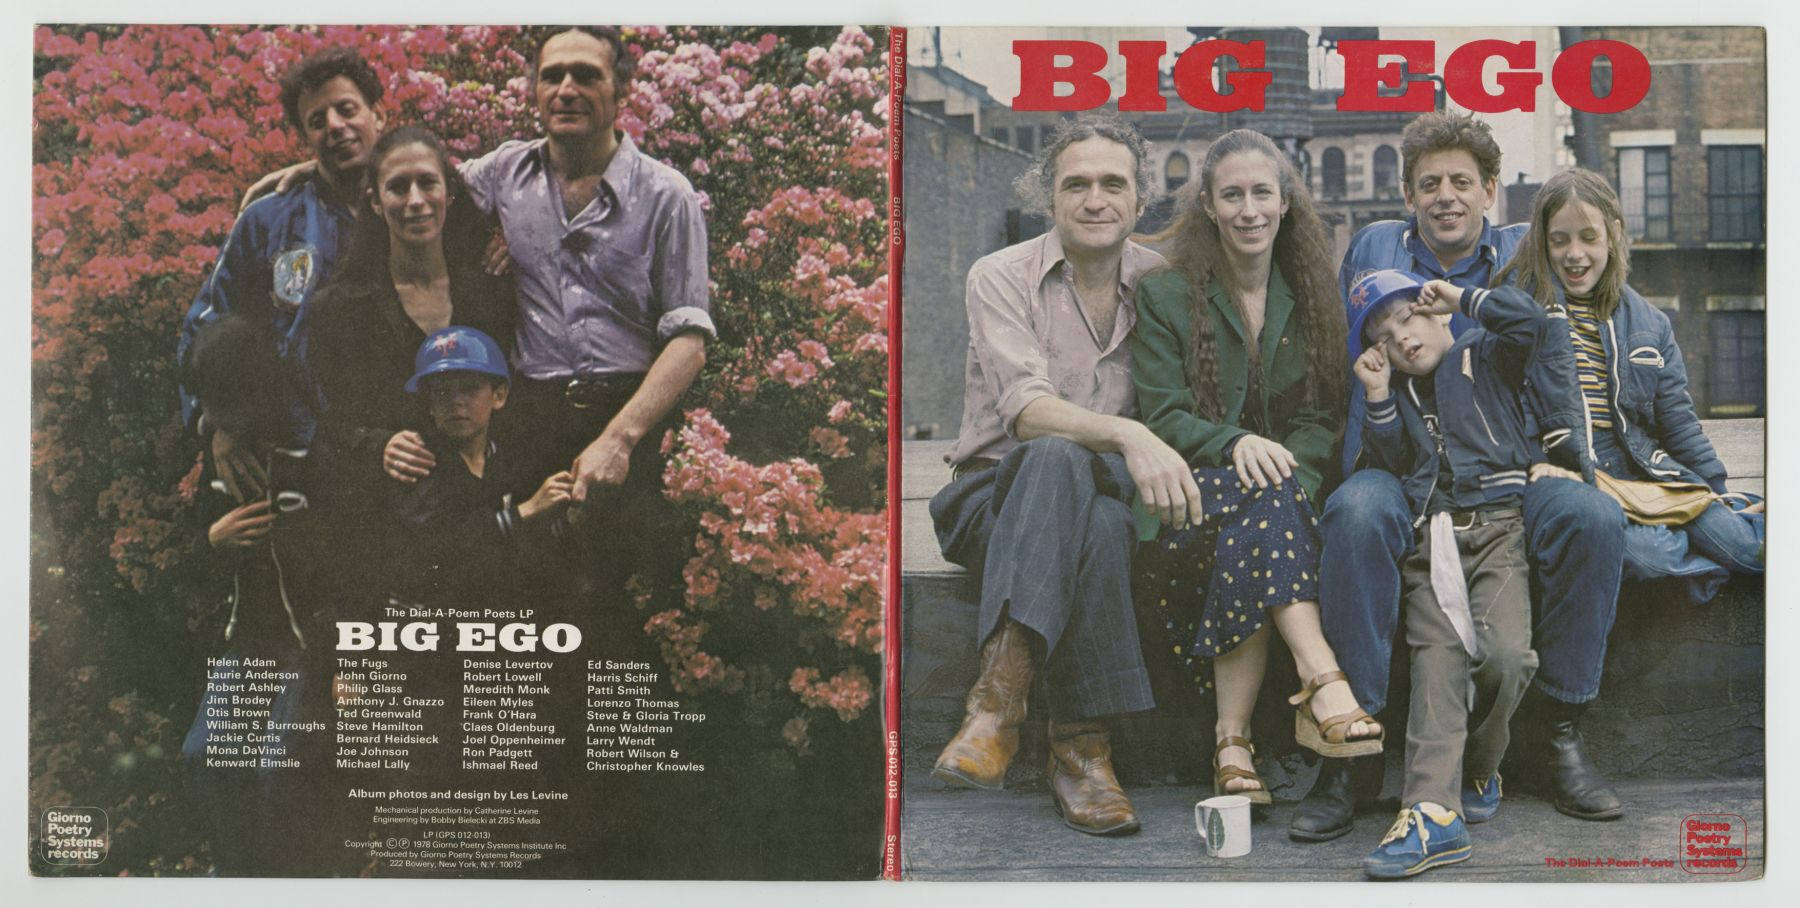 The Dial-A-Poem Poets: Big Ego (1978), front and back covers